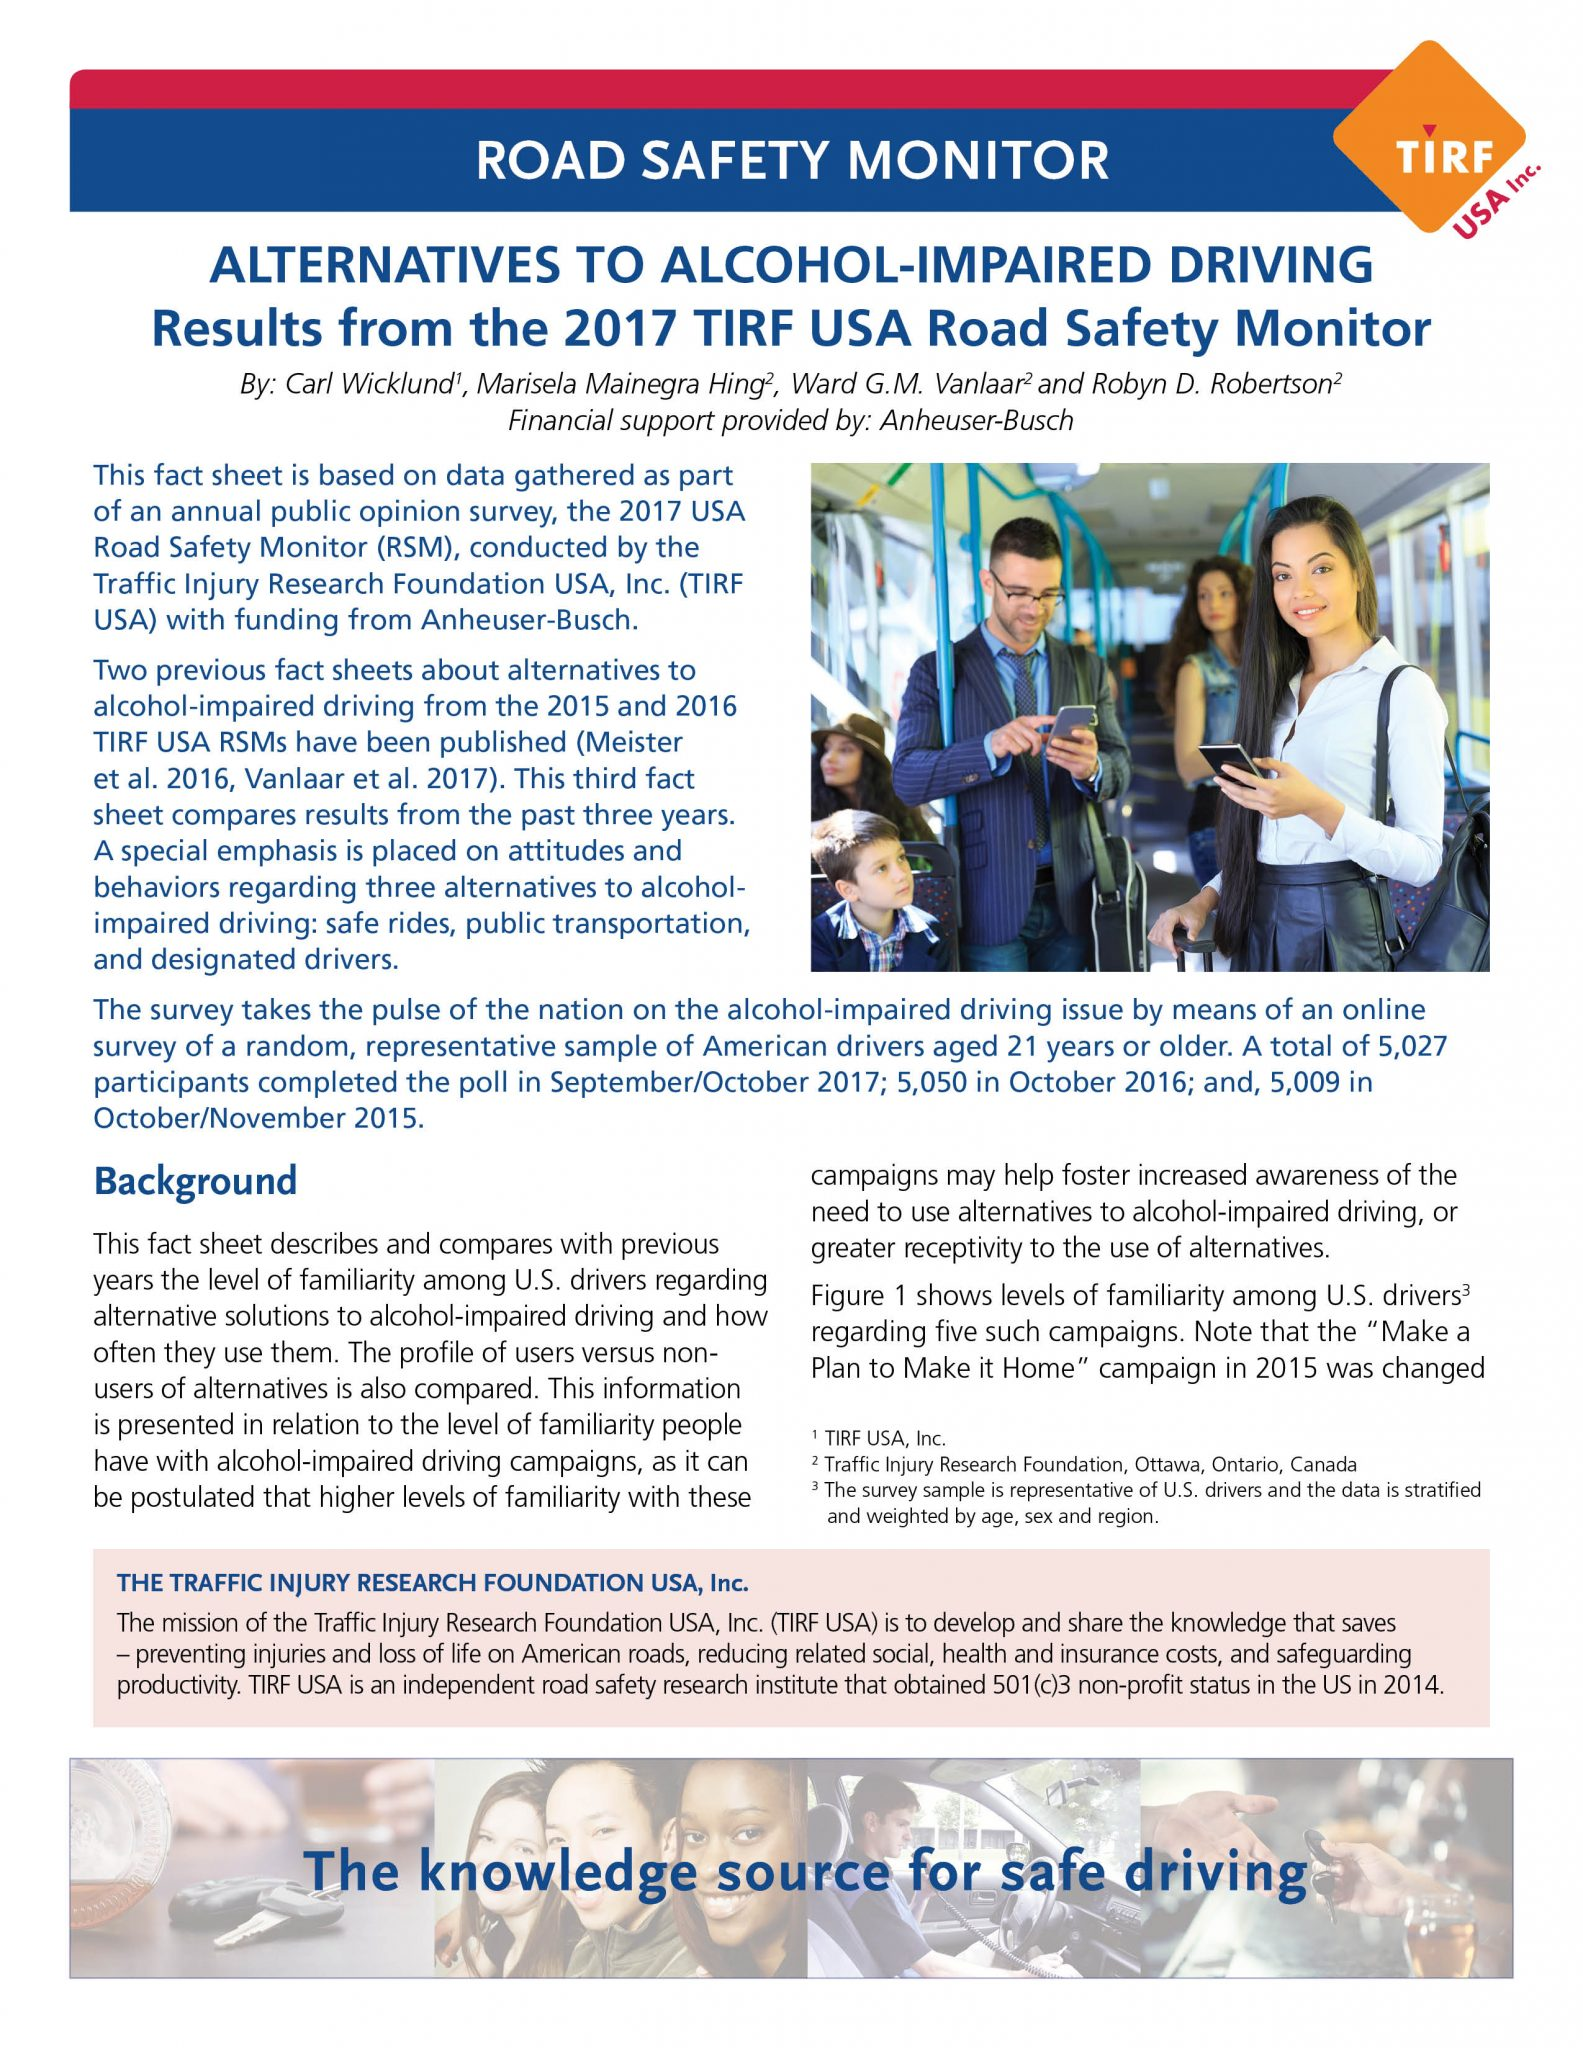 Road Safety Monitor: Alternatives to alcohol-impaired driving in the United States, 2017